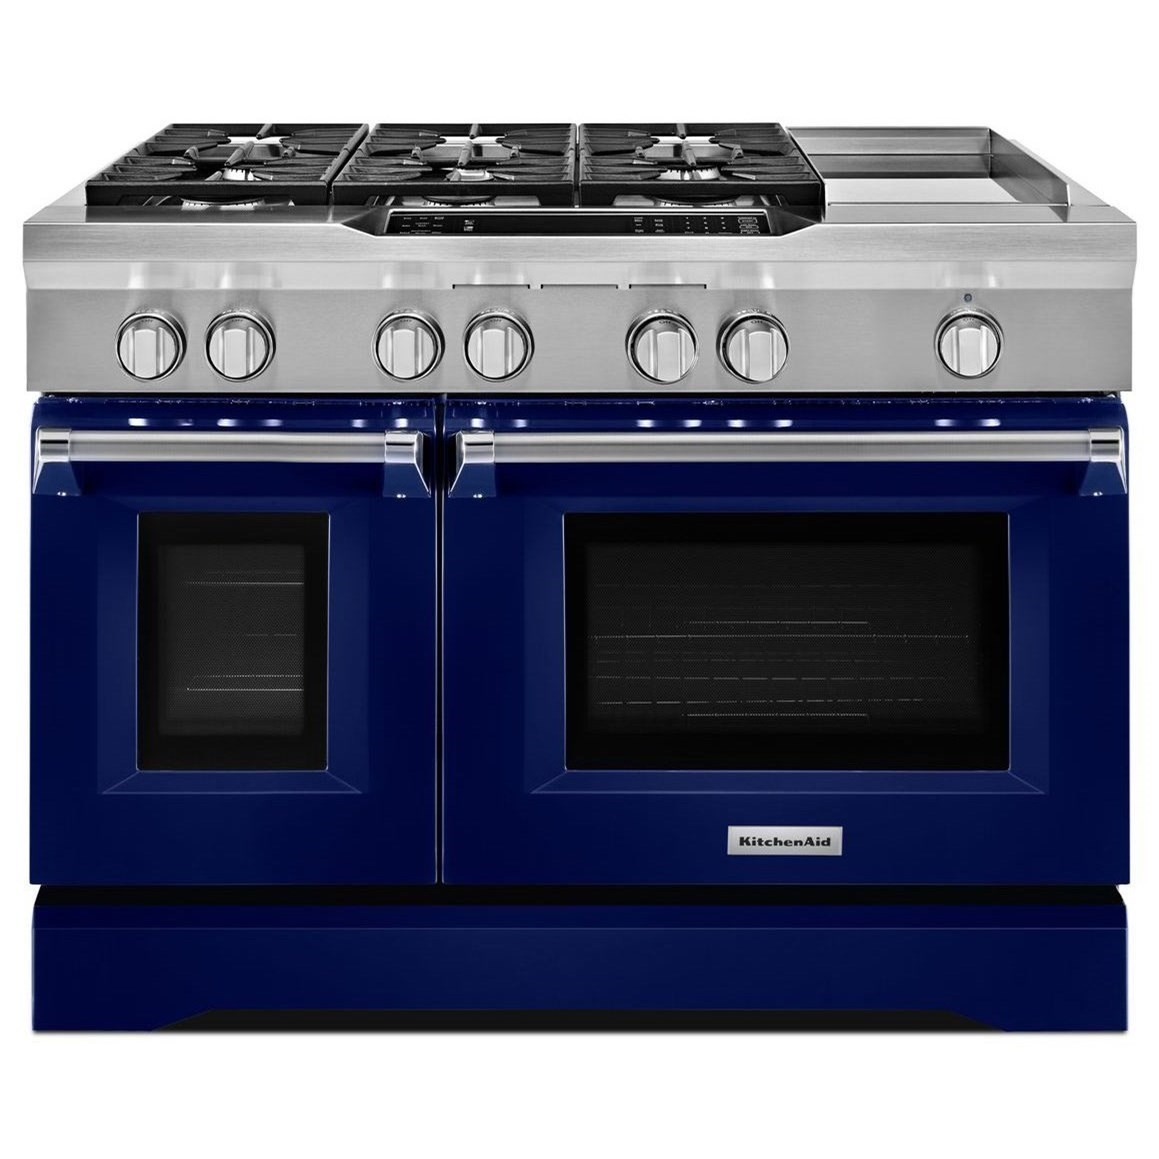 Merveilleux KitchenAid Dual Fuel Ranges48